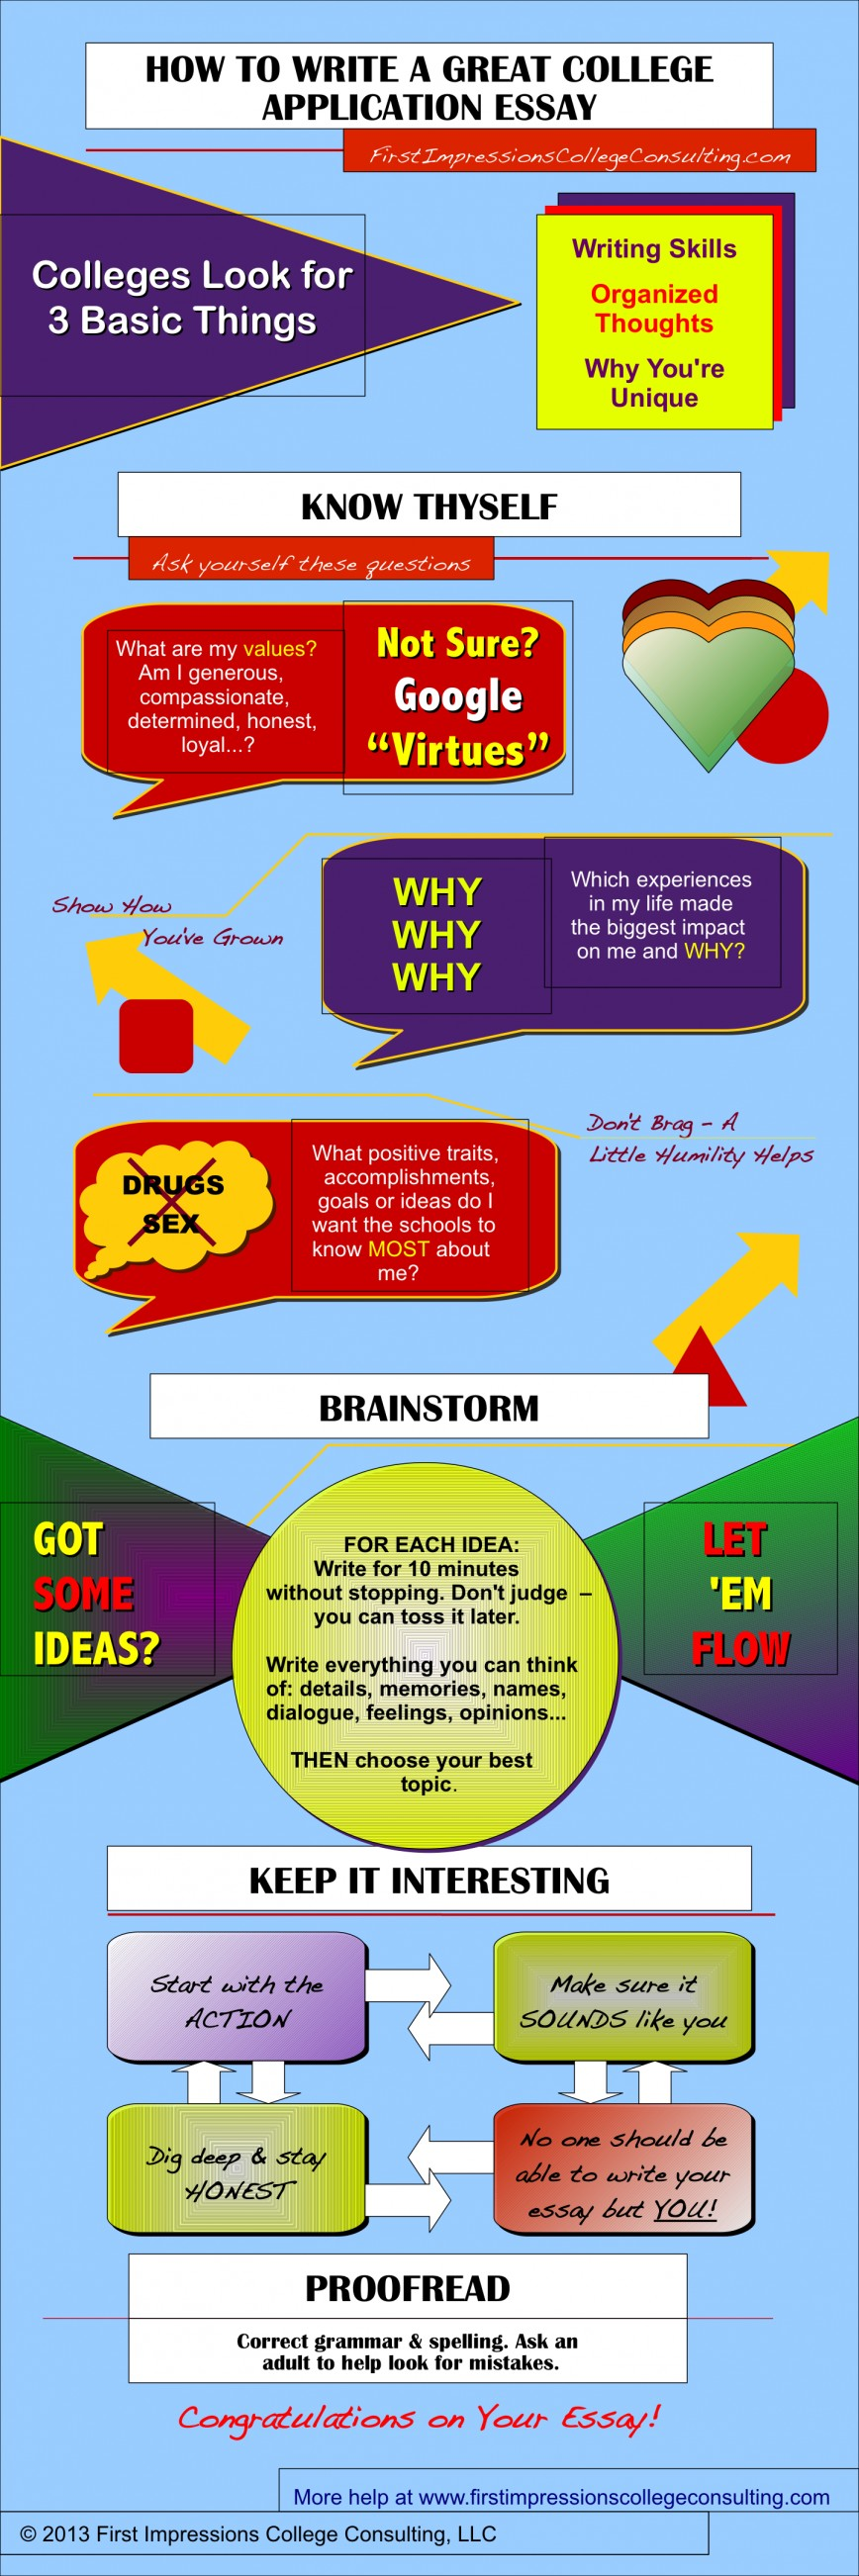 012 College Essay Consultants Write Great Infographic Final Fantastic Best